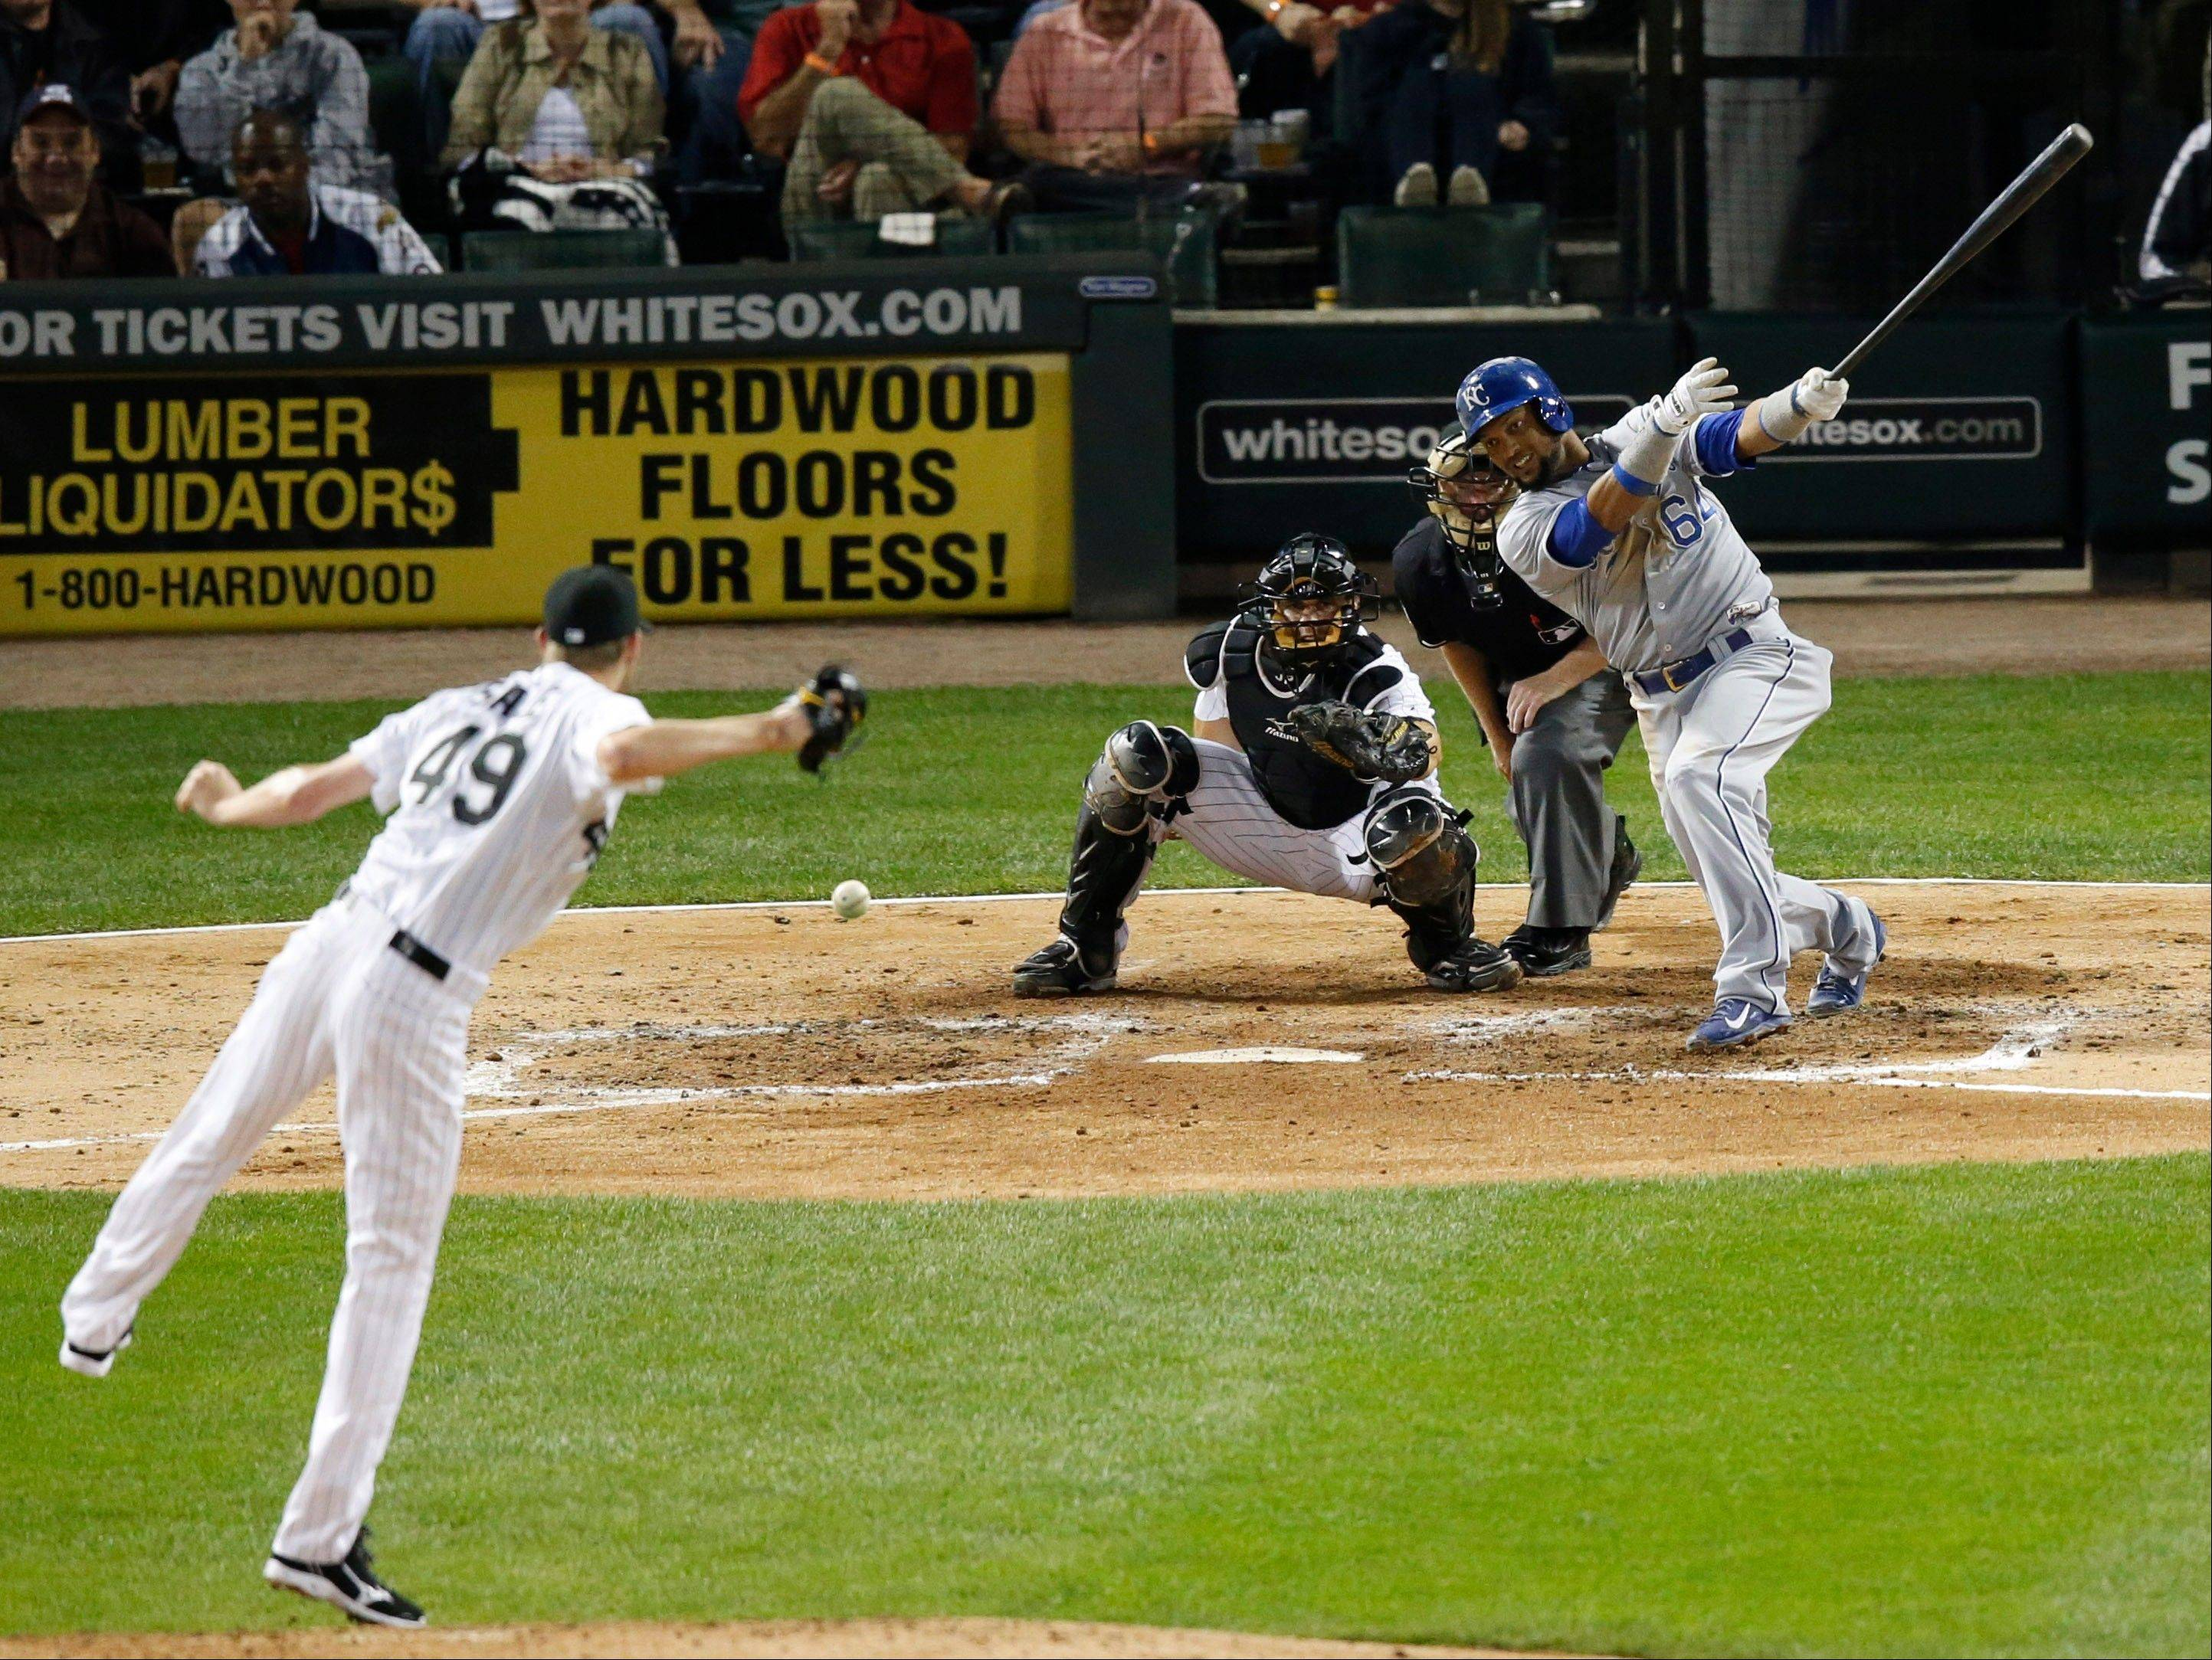 Kansas City Royals' Emilio Bonifacio, right, hits an RBI single past Chicago White Sox starting pitcher Chris Sale during the fourth inning of a baseball game Friday, Sept. 27, 2013, in Chicago.